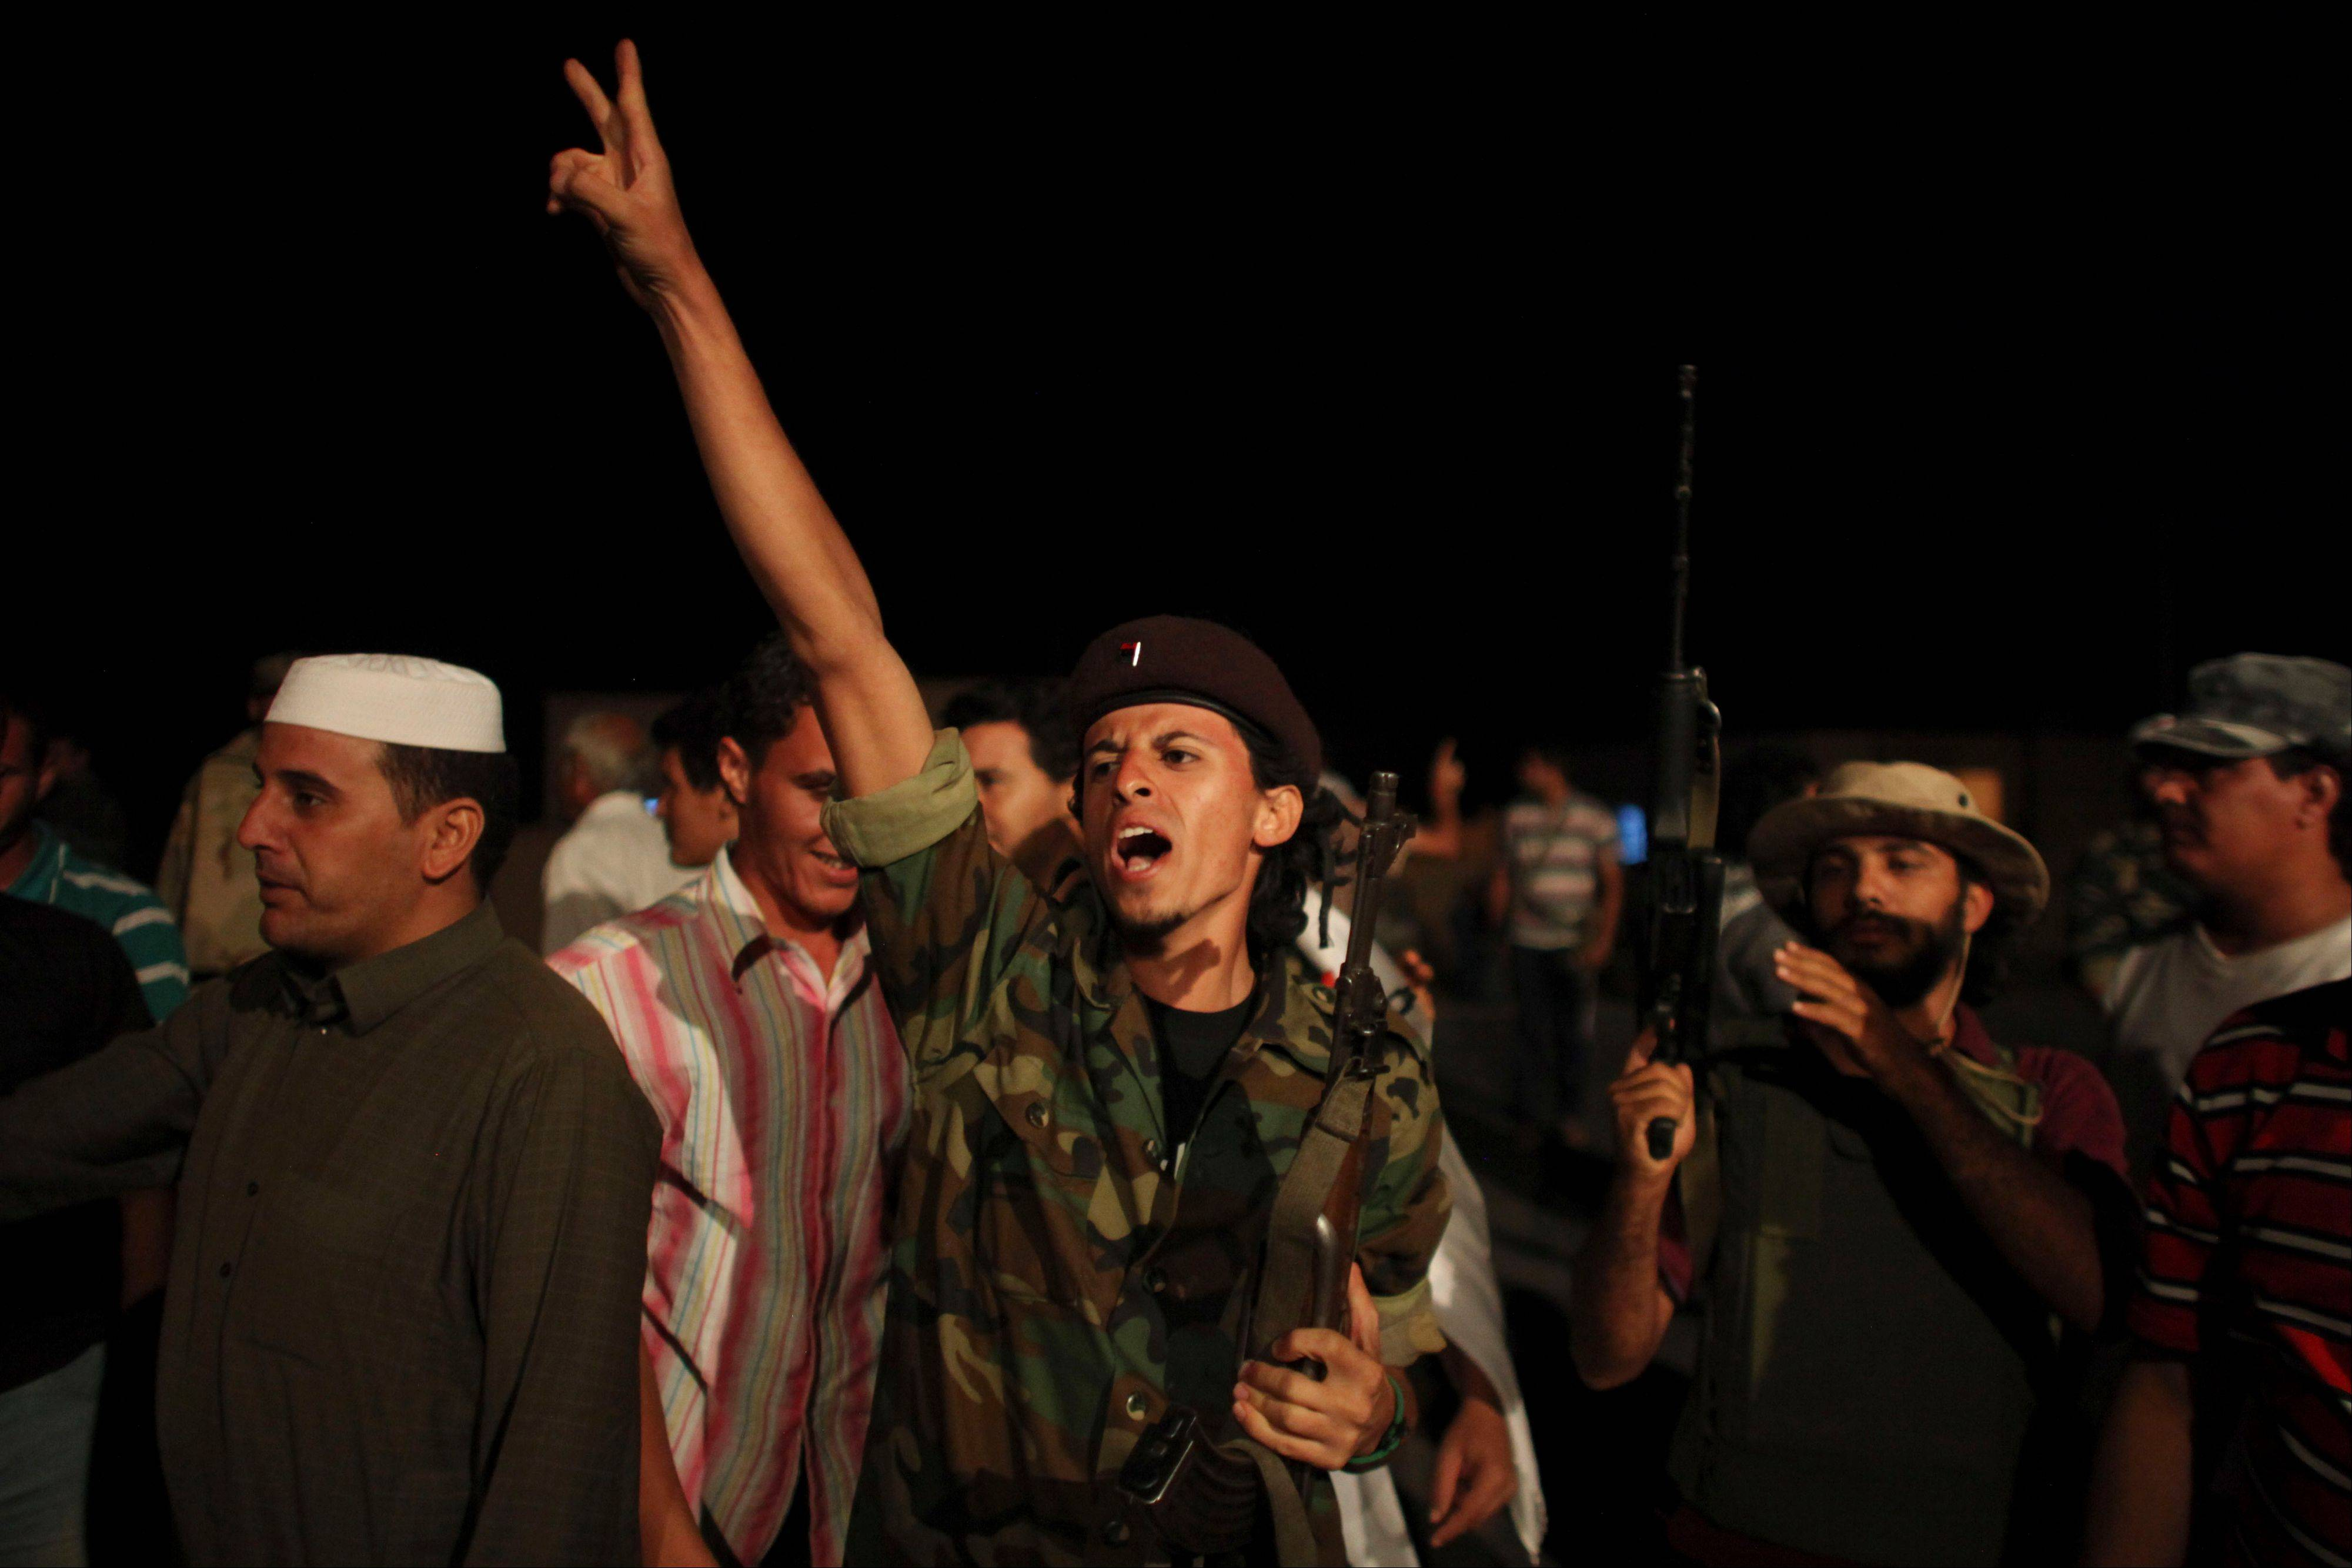 Former rebel soldier, Mootaz Isse, 25, electronics student, center, celebrates as other rebel soldiers leave to the front, at a checkpoint between Tarhouna and Bani Walid, Libya. Associated Press